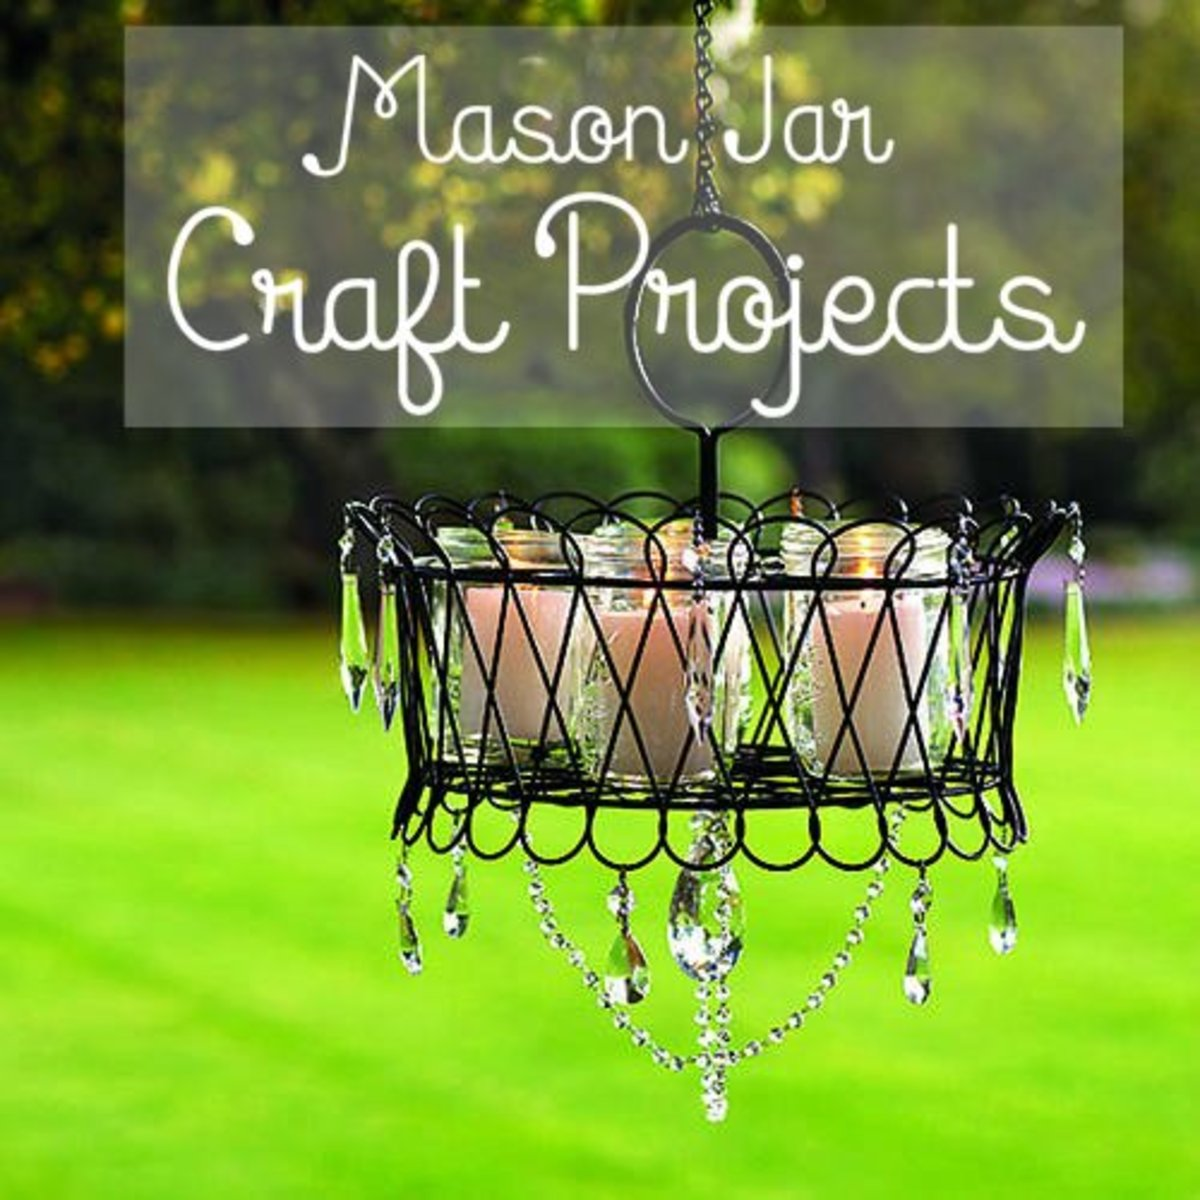 94 Outstanding Craft Projects Using Glass Jars